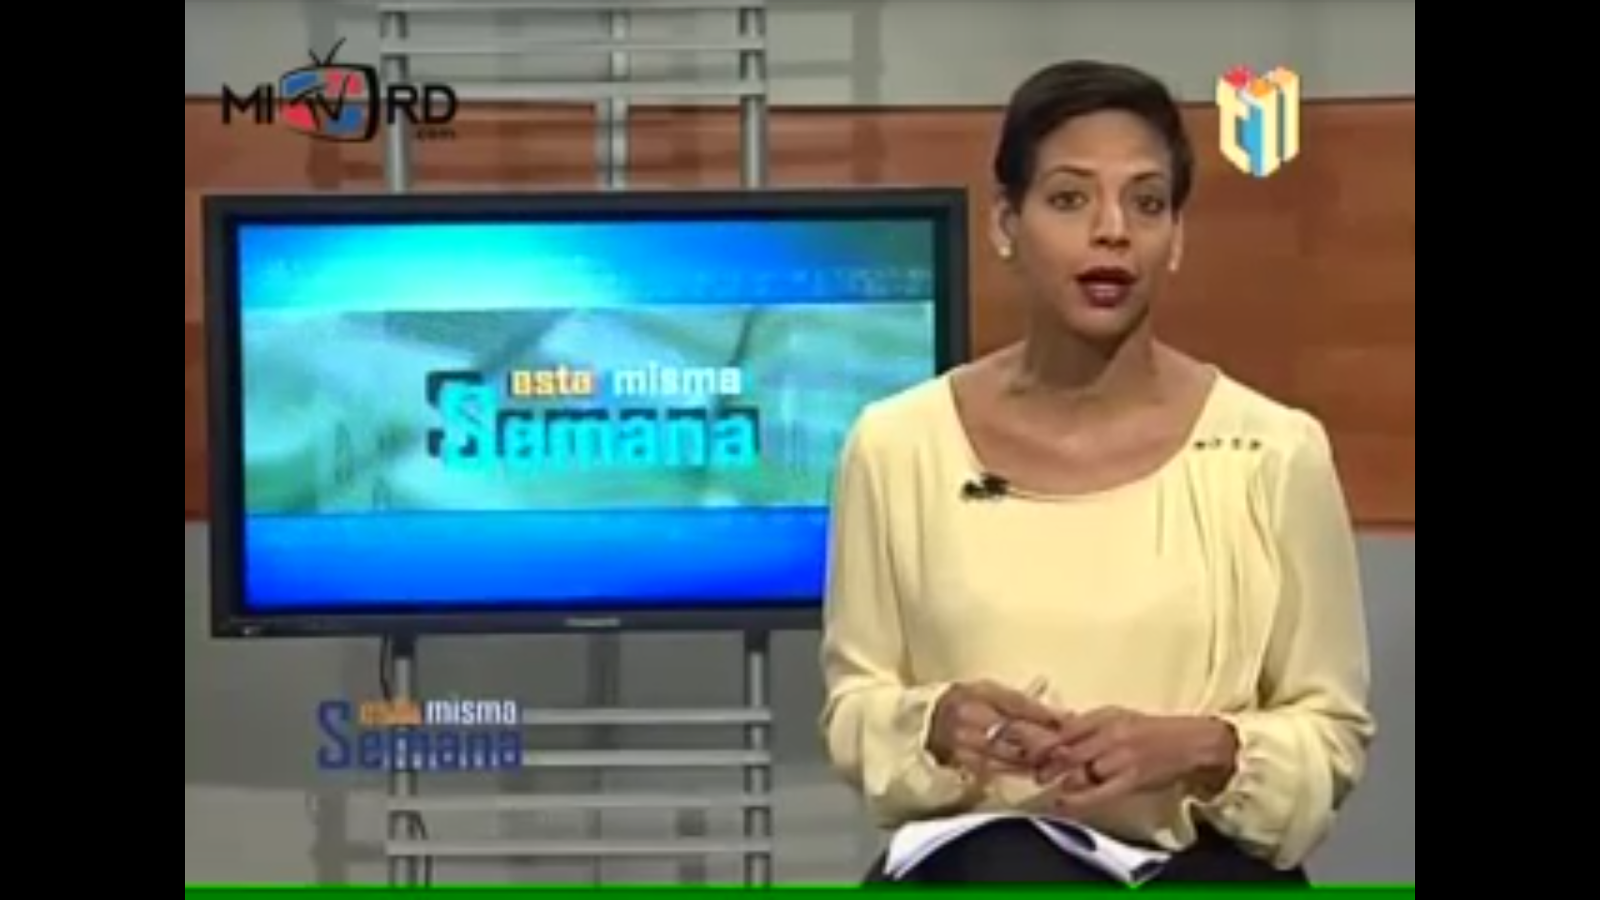 MiTV RD - Dominican Television- screenshot